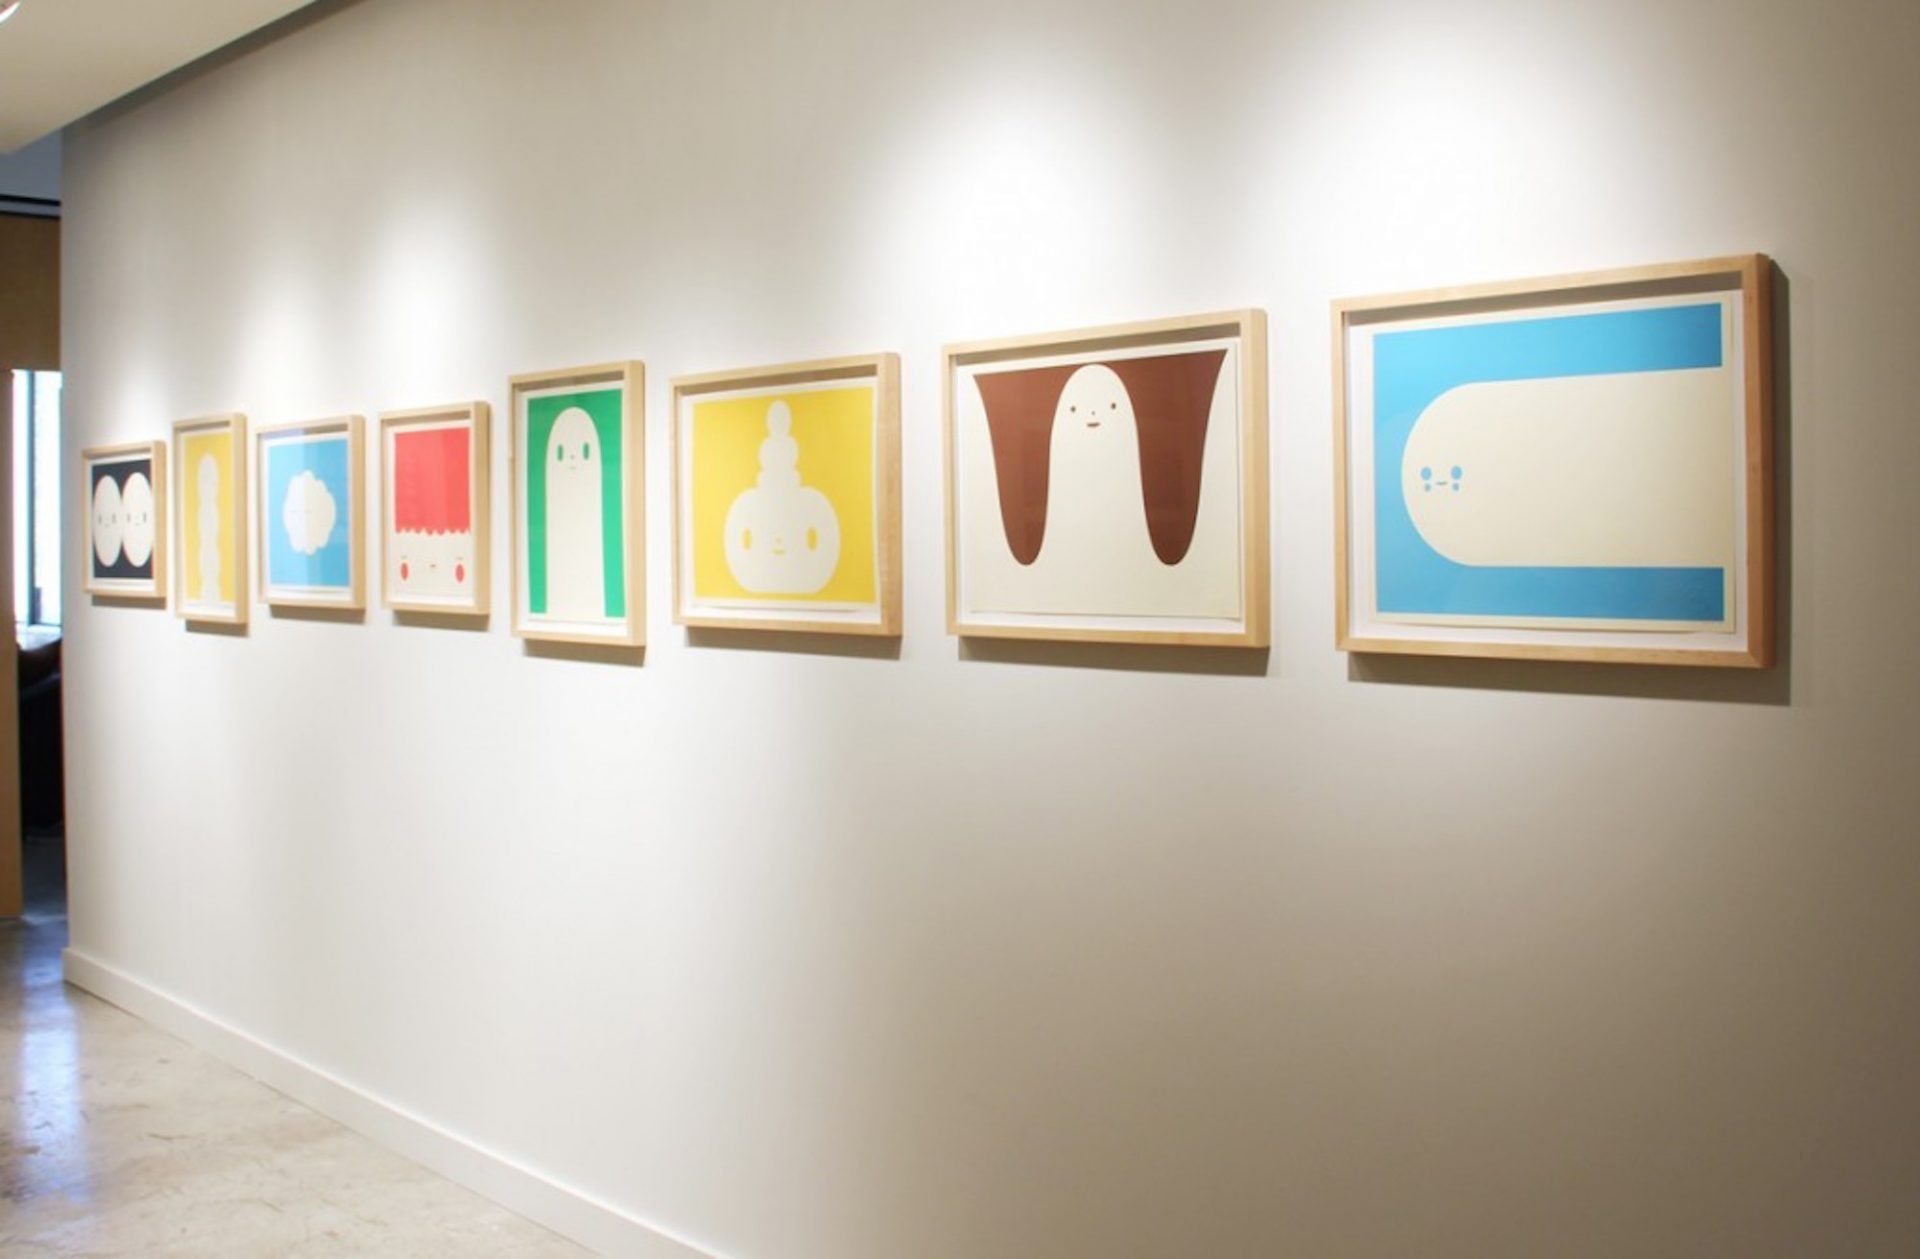 L to R: Two of a Kind - Rising Sun - Little Cloud - The Sleeper - Uprising - The Signal - Inside Out - Moving On, 8 print silkscreen edition of 100, 2010